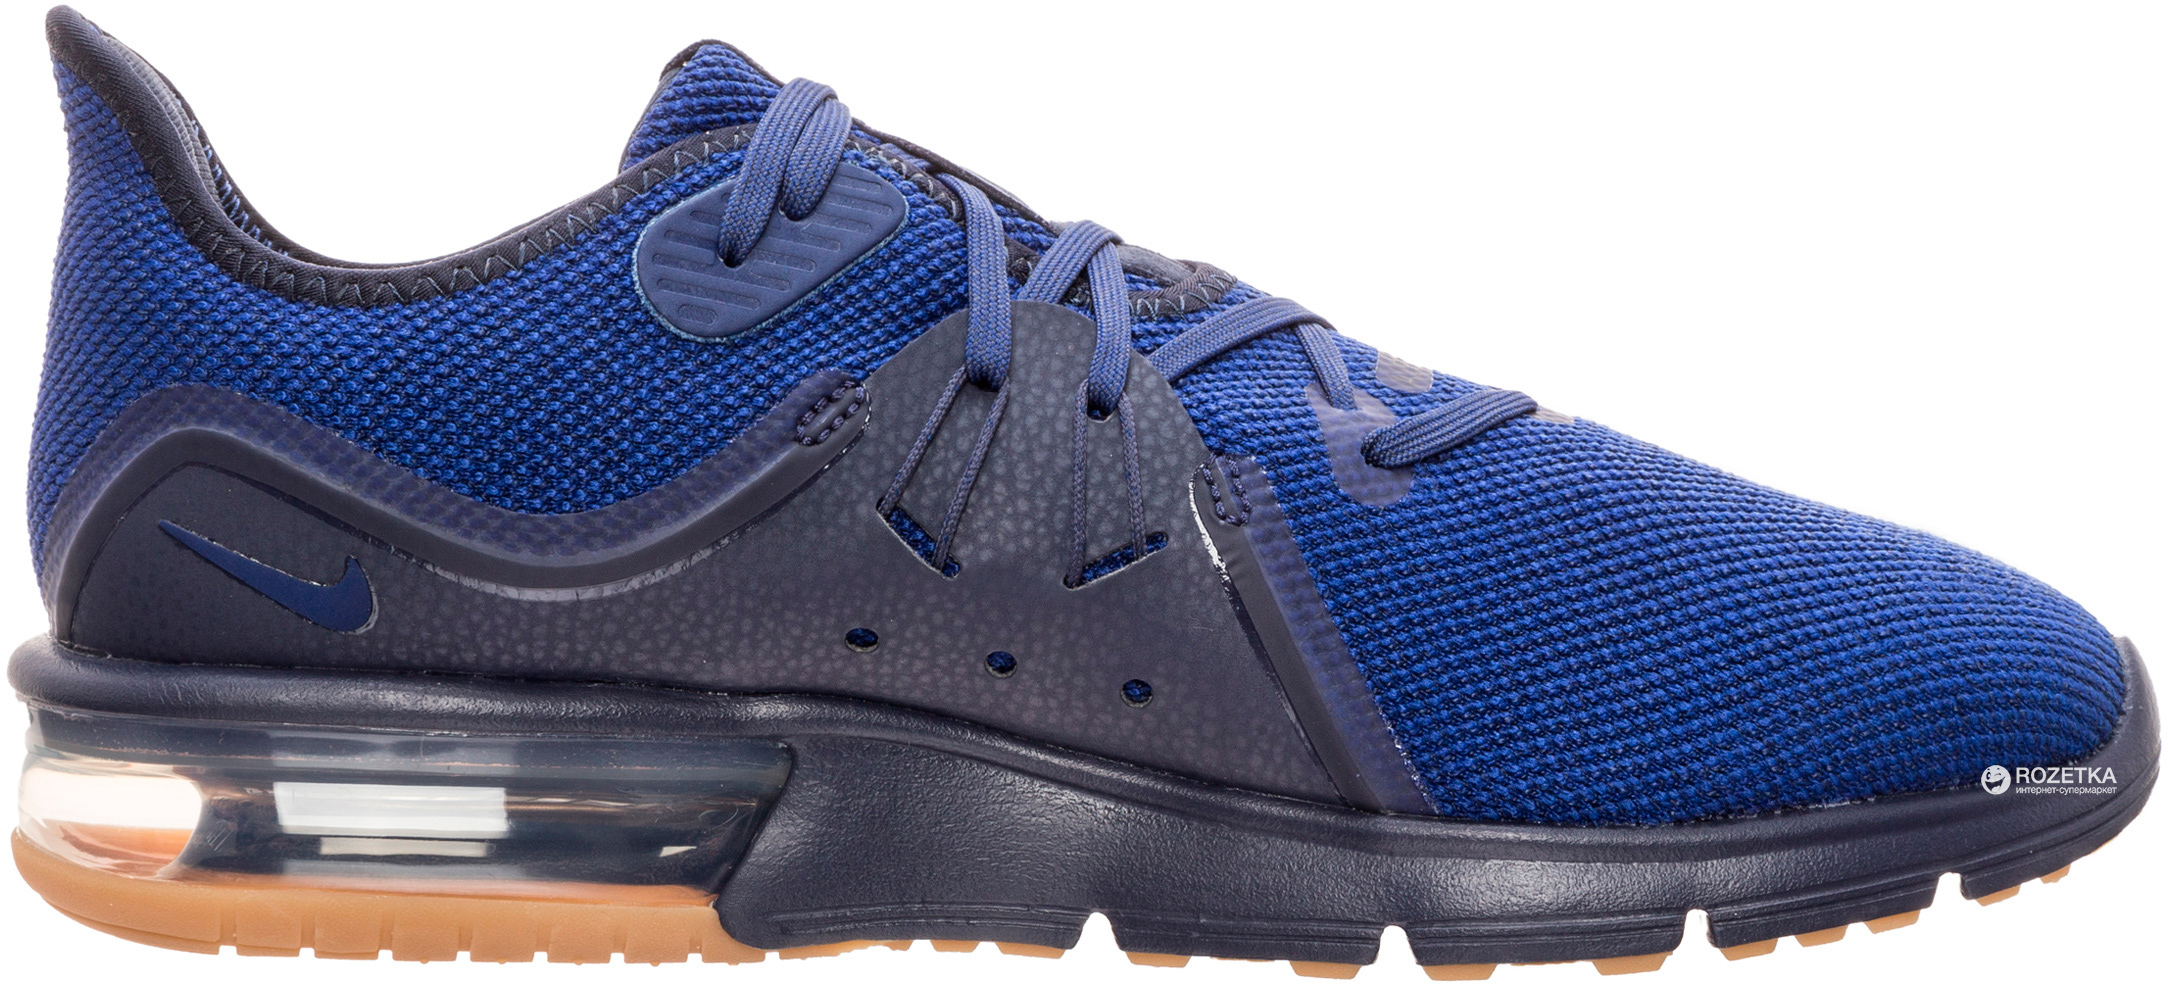 sports shoes 268e3 e1944 Кроссовки Nike Air Max Sequent 3 921694-405 40.5 (5) 26 см (